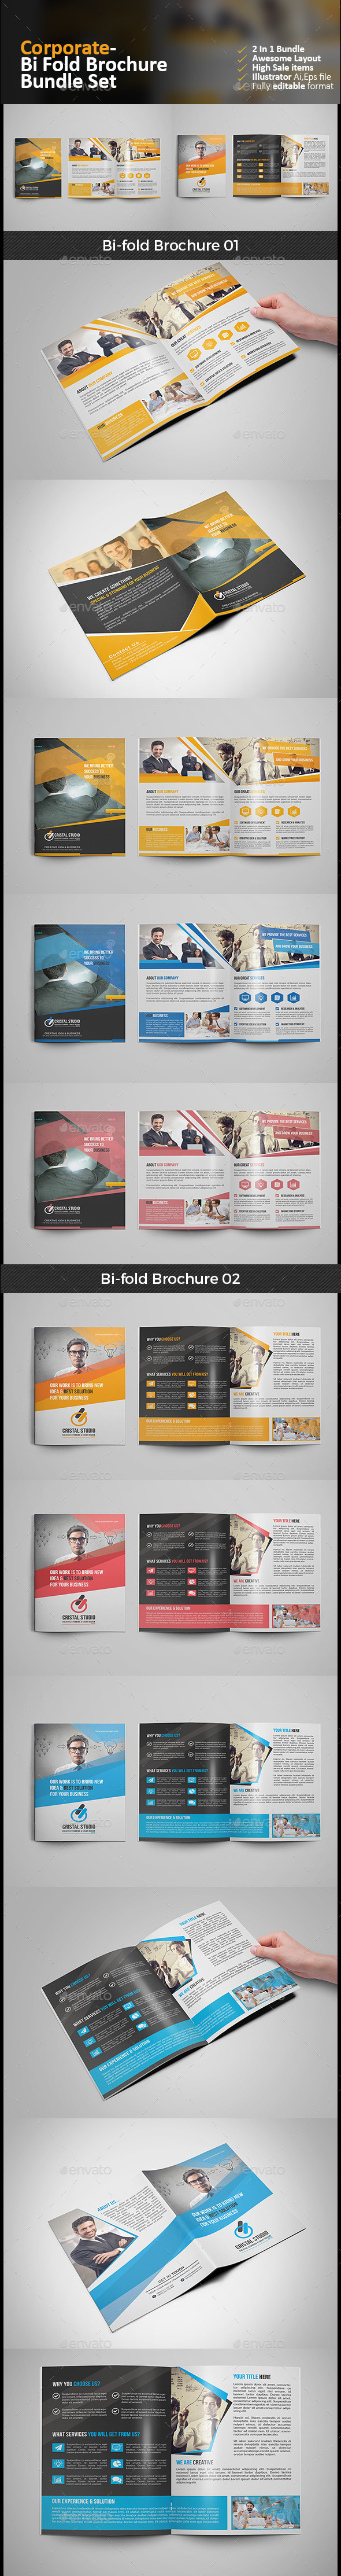 Bi Fold Brochure Bundle 2 in 1